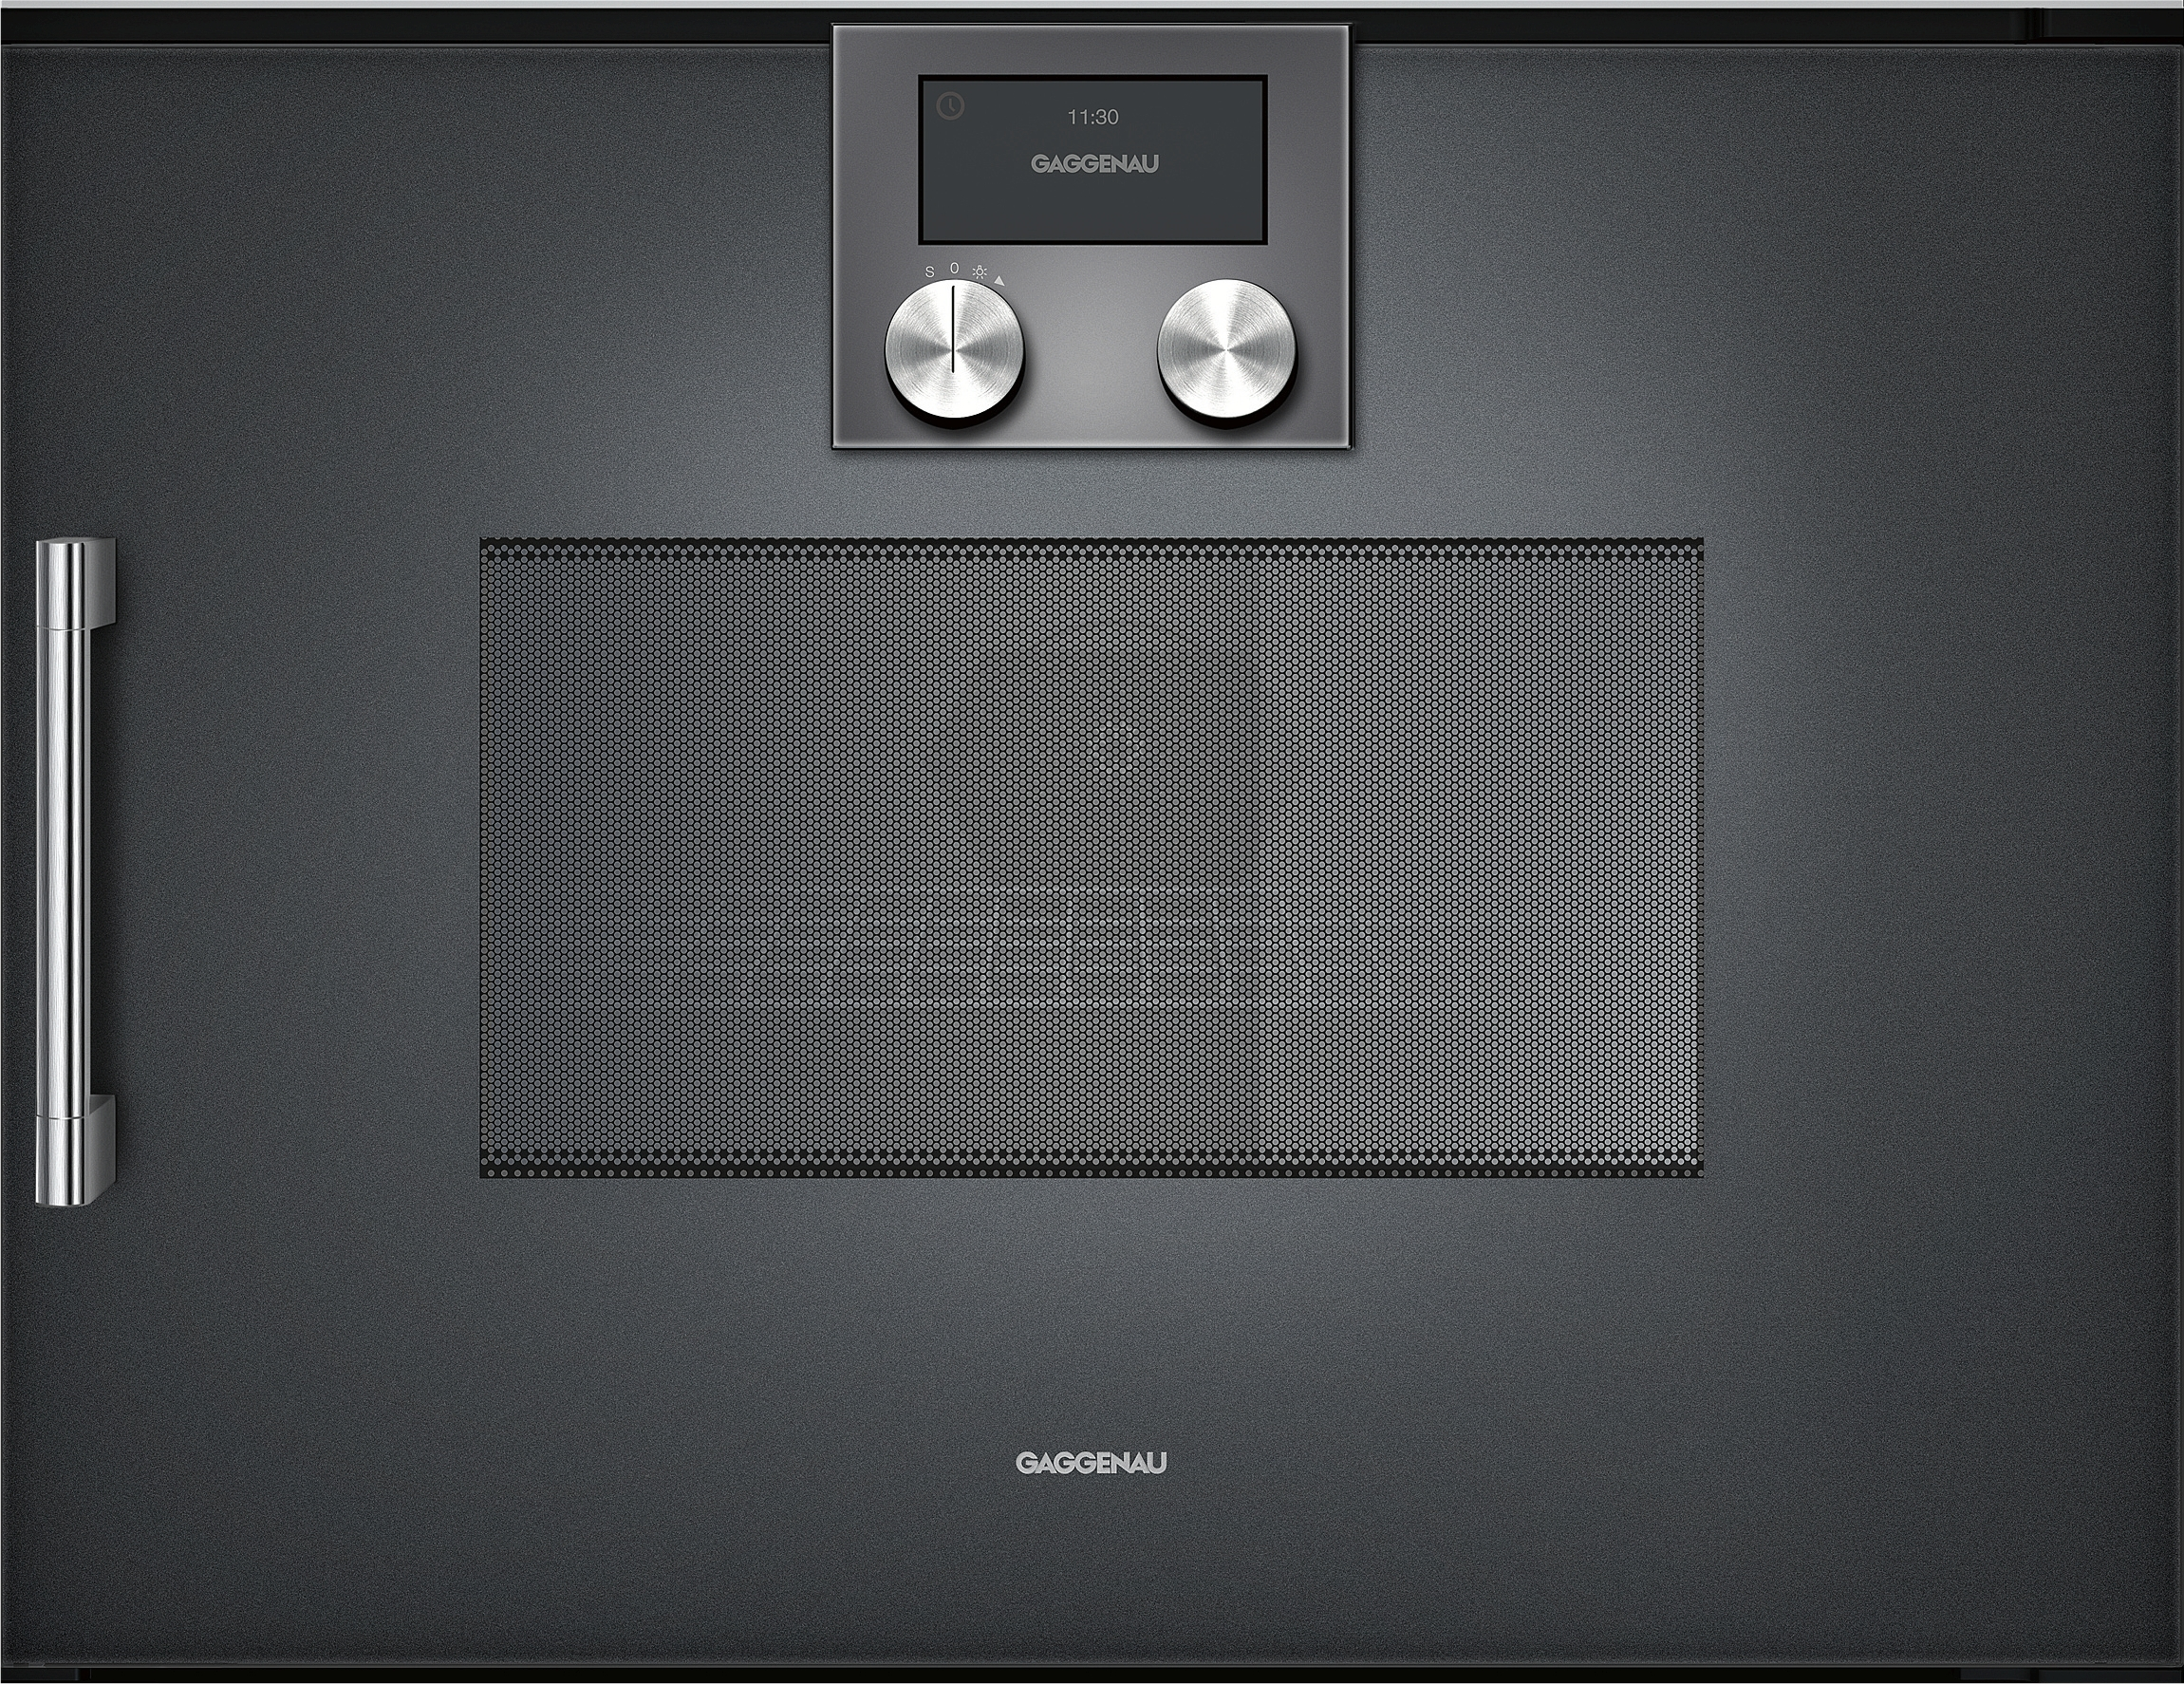 gaggenau bmp250100 mikrowellen backofen serie 200 vollglast r in gaggenau anthrazit breite 60 cm. Black Bedroom Furniture Sets. Home Design Ideas